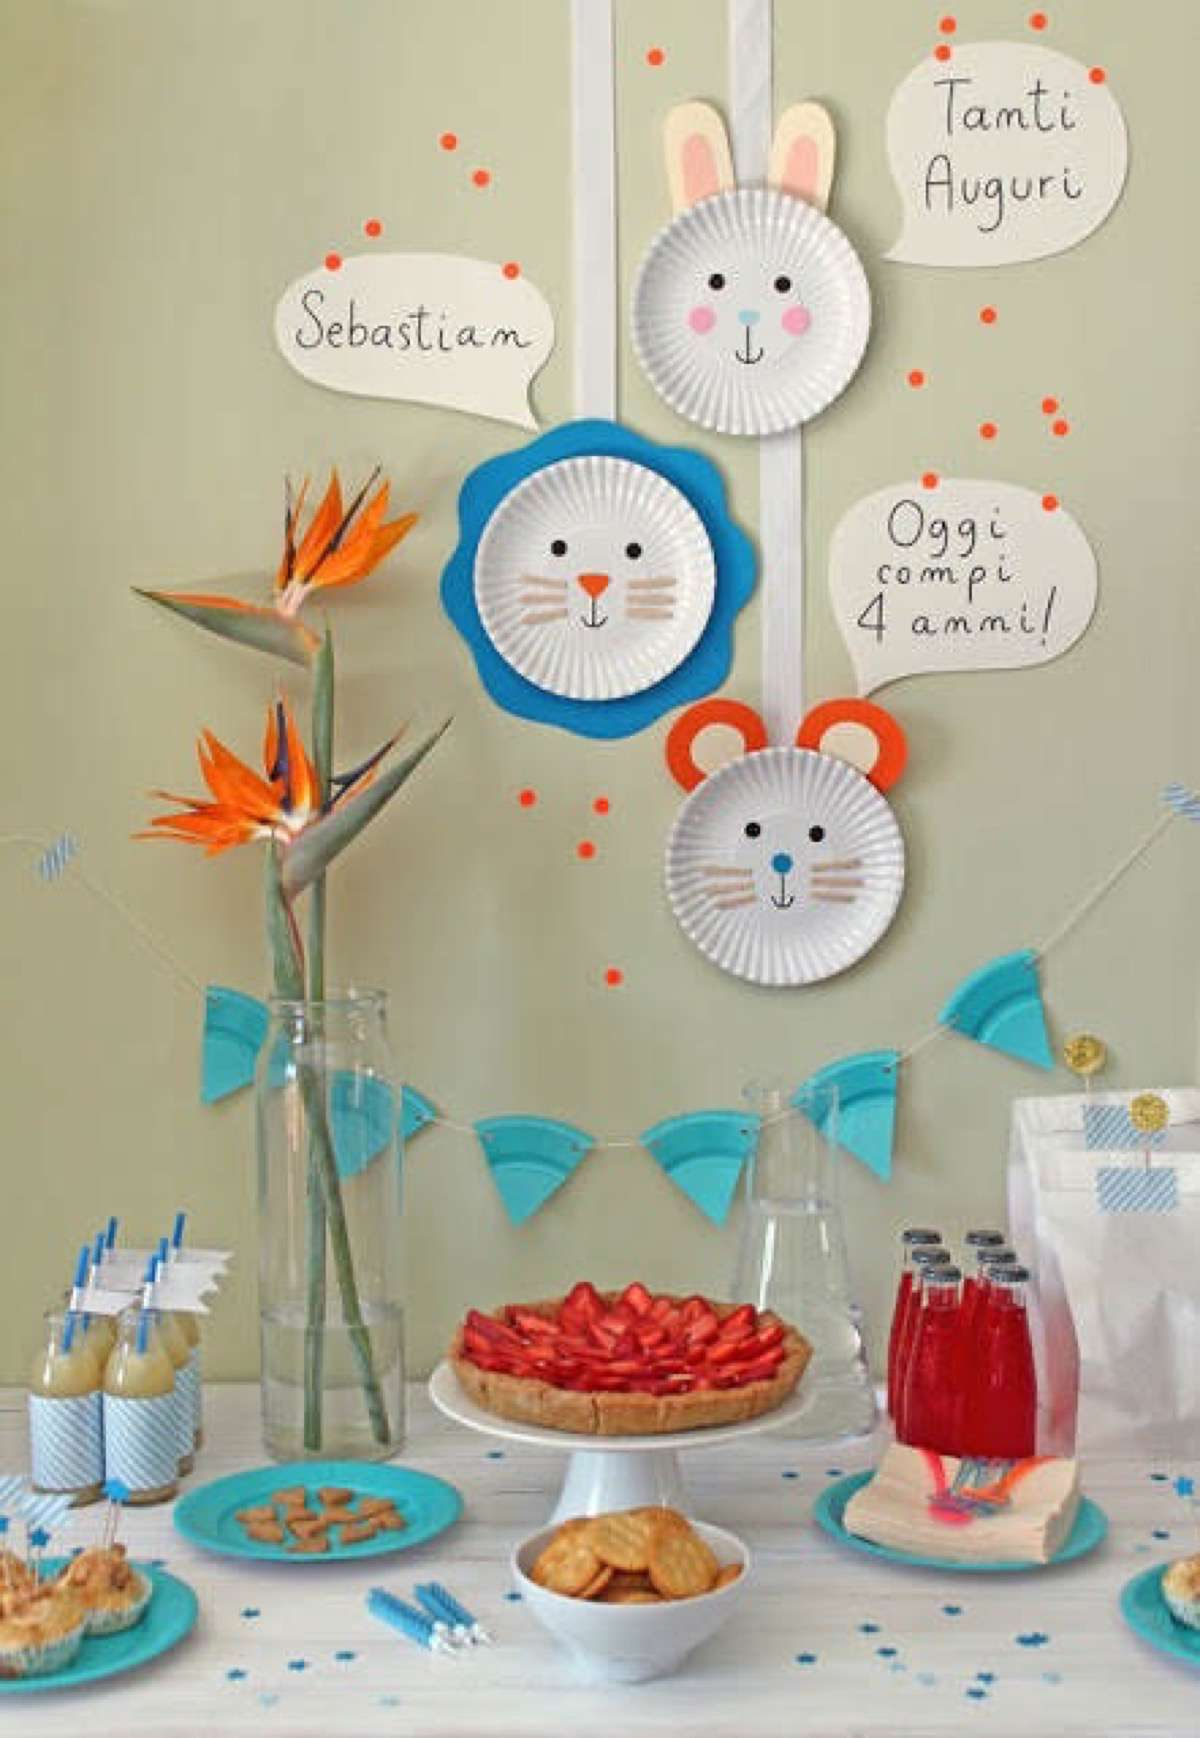 Decoraci n de fiestas infantiles con material reciclado for Decoracion oficina creativa